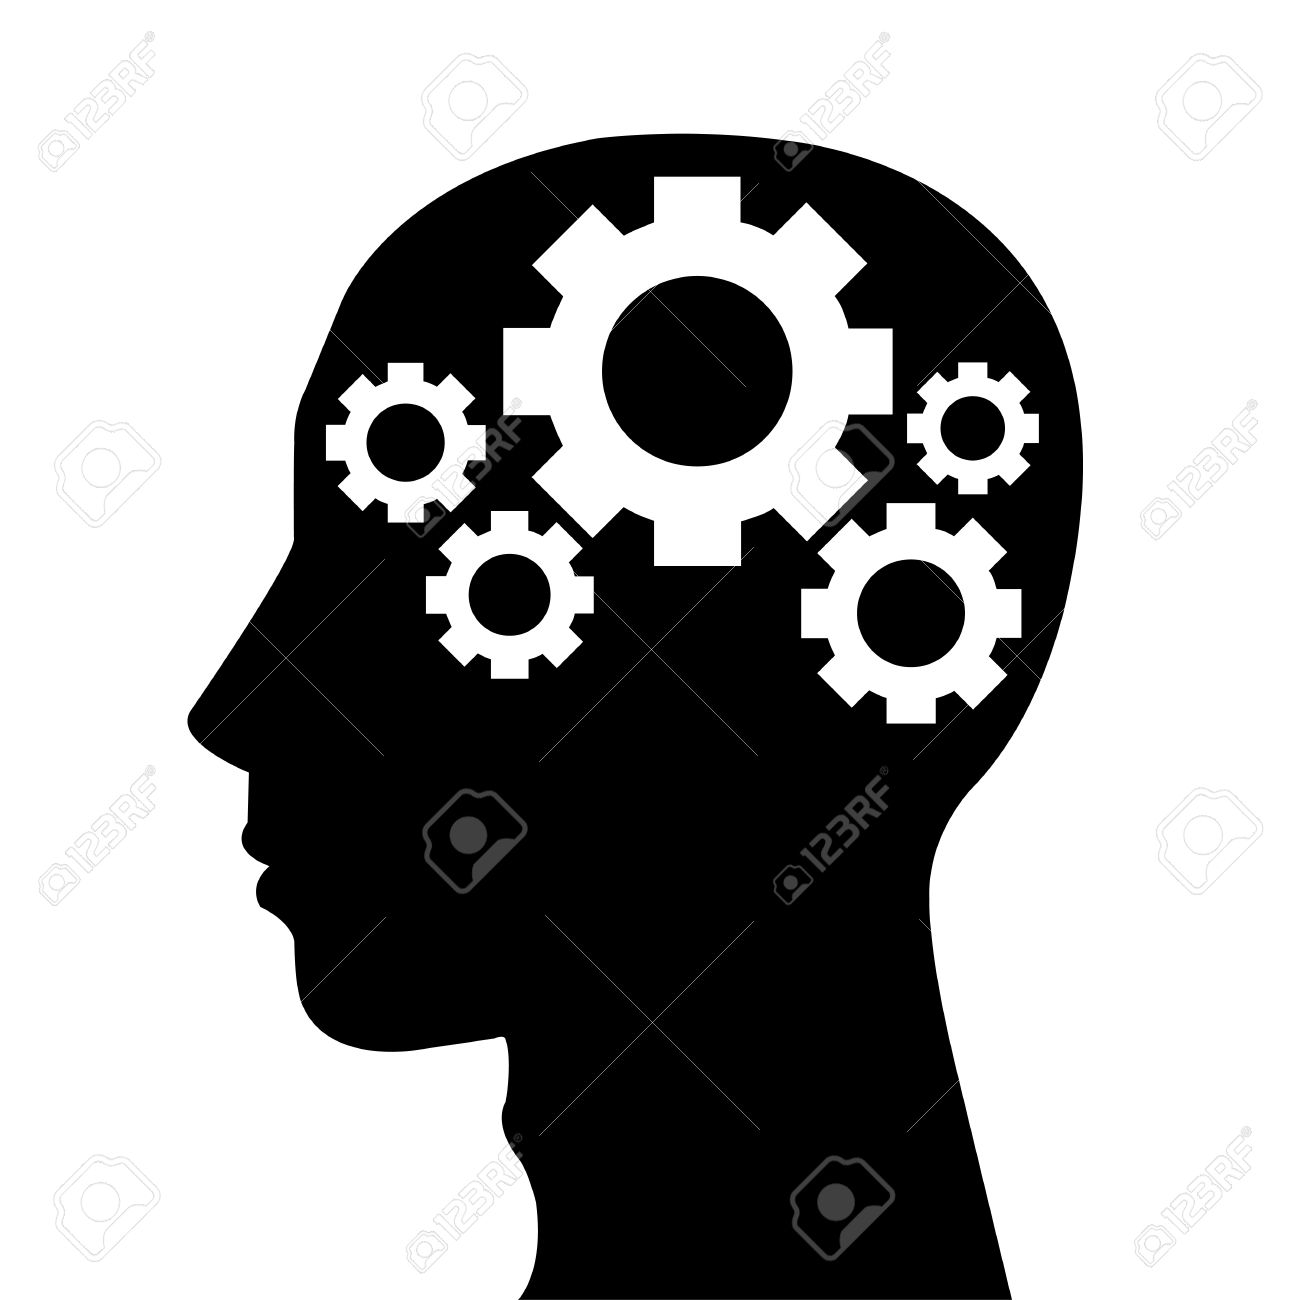 Gears clipart brain idea Clipart Human Silhouette Set in